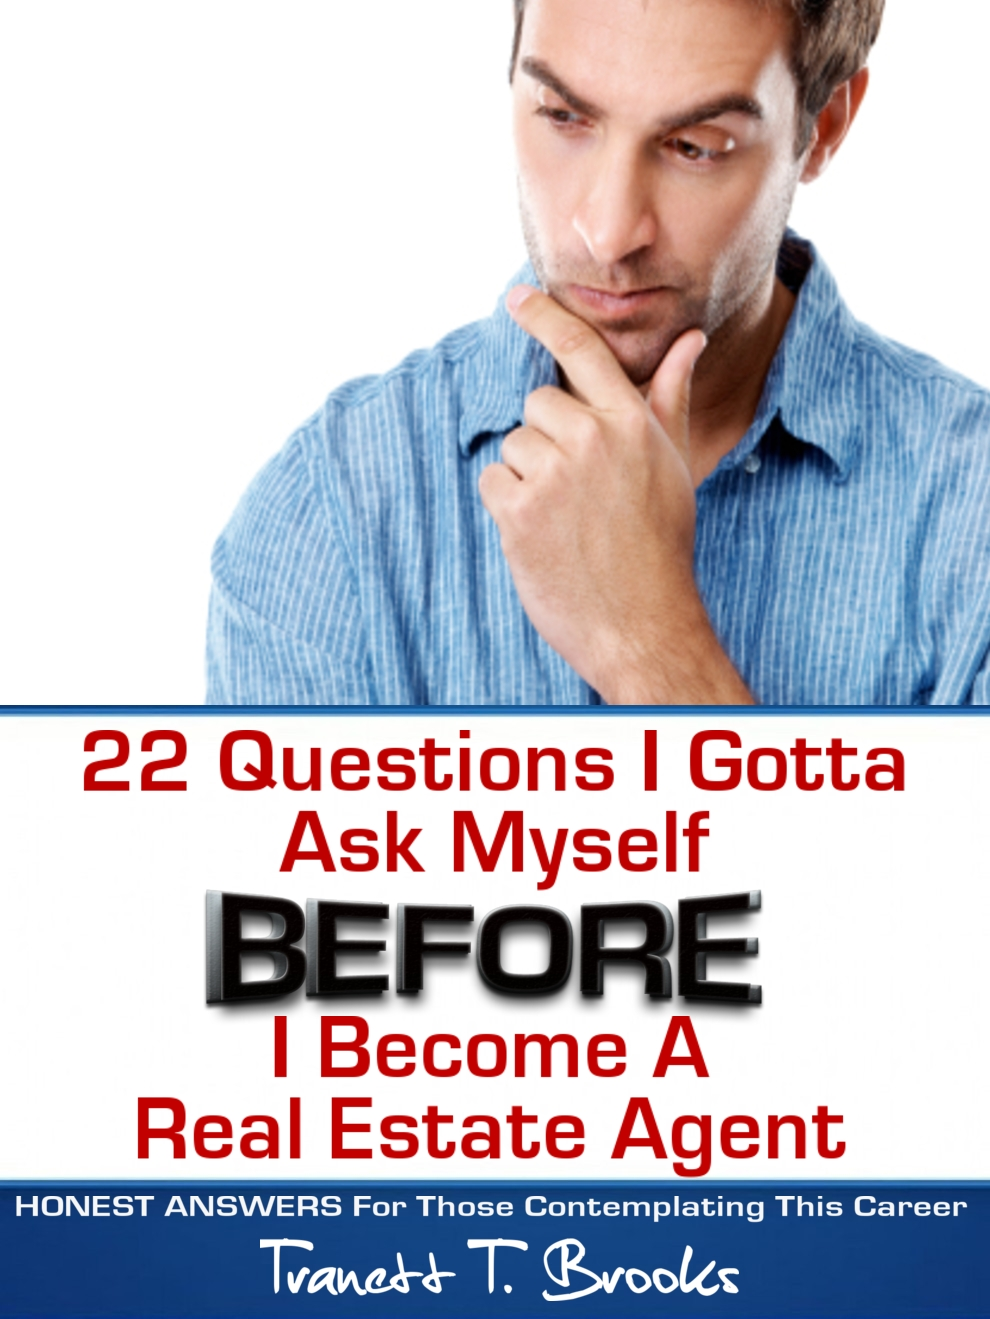 22 Questions I Gotta Ask Myself BEFORE I Become a Real Estate Agent